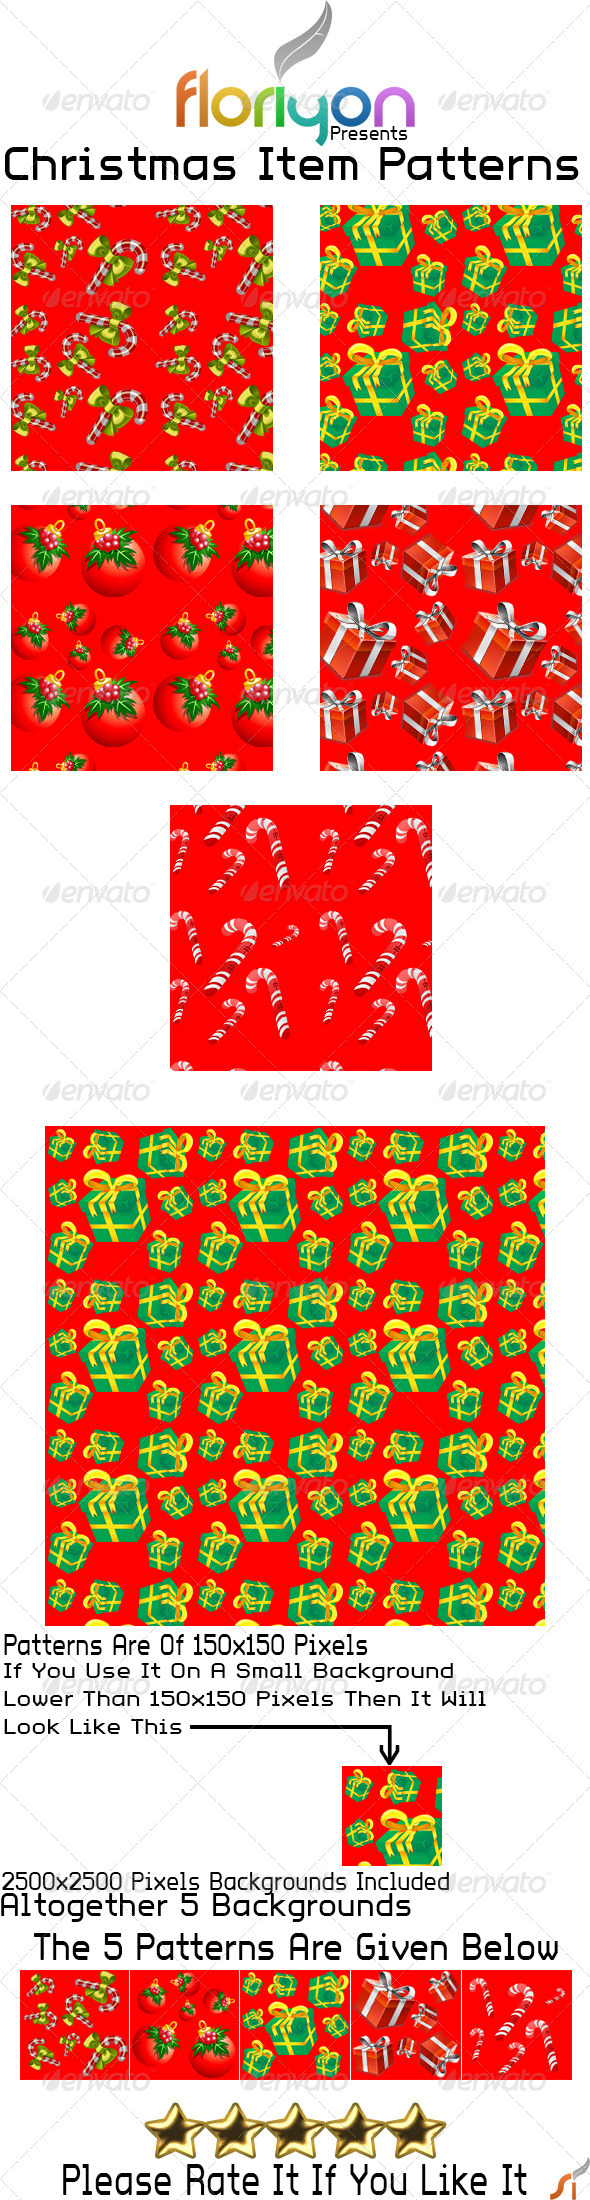 GraphicRiver Christmas Item Patterns 4862111